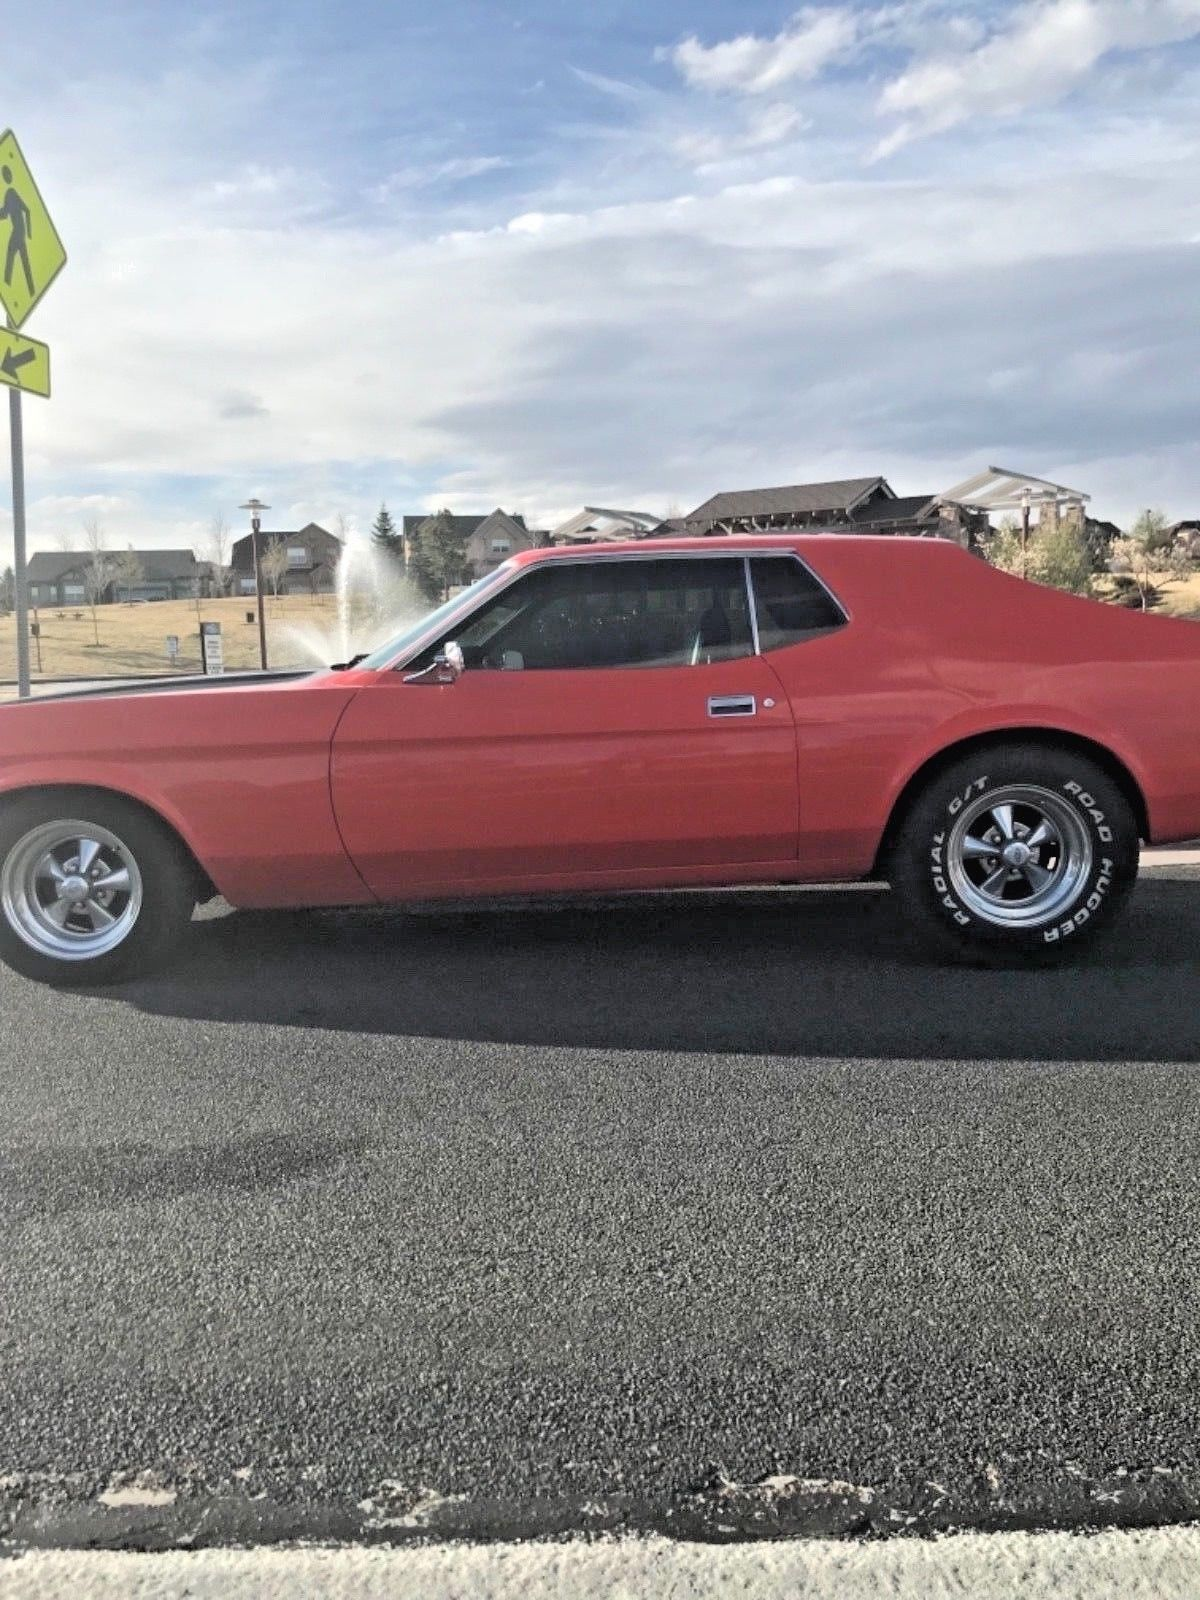 Ebay 1971 ford mustang 1971 ford mustang coupe fordmustang ford